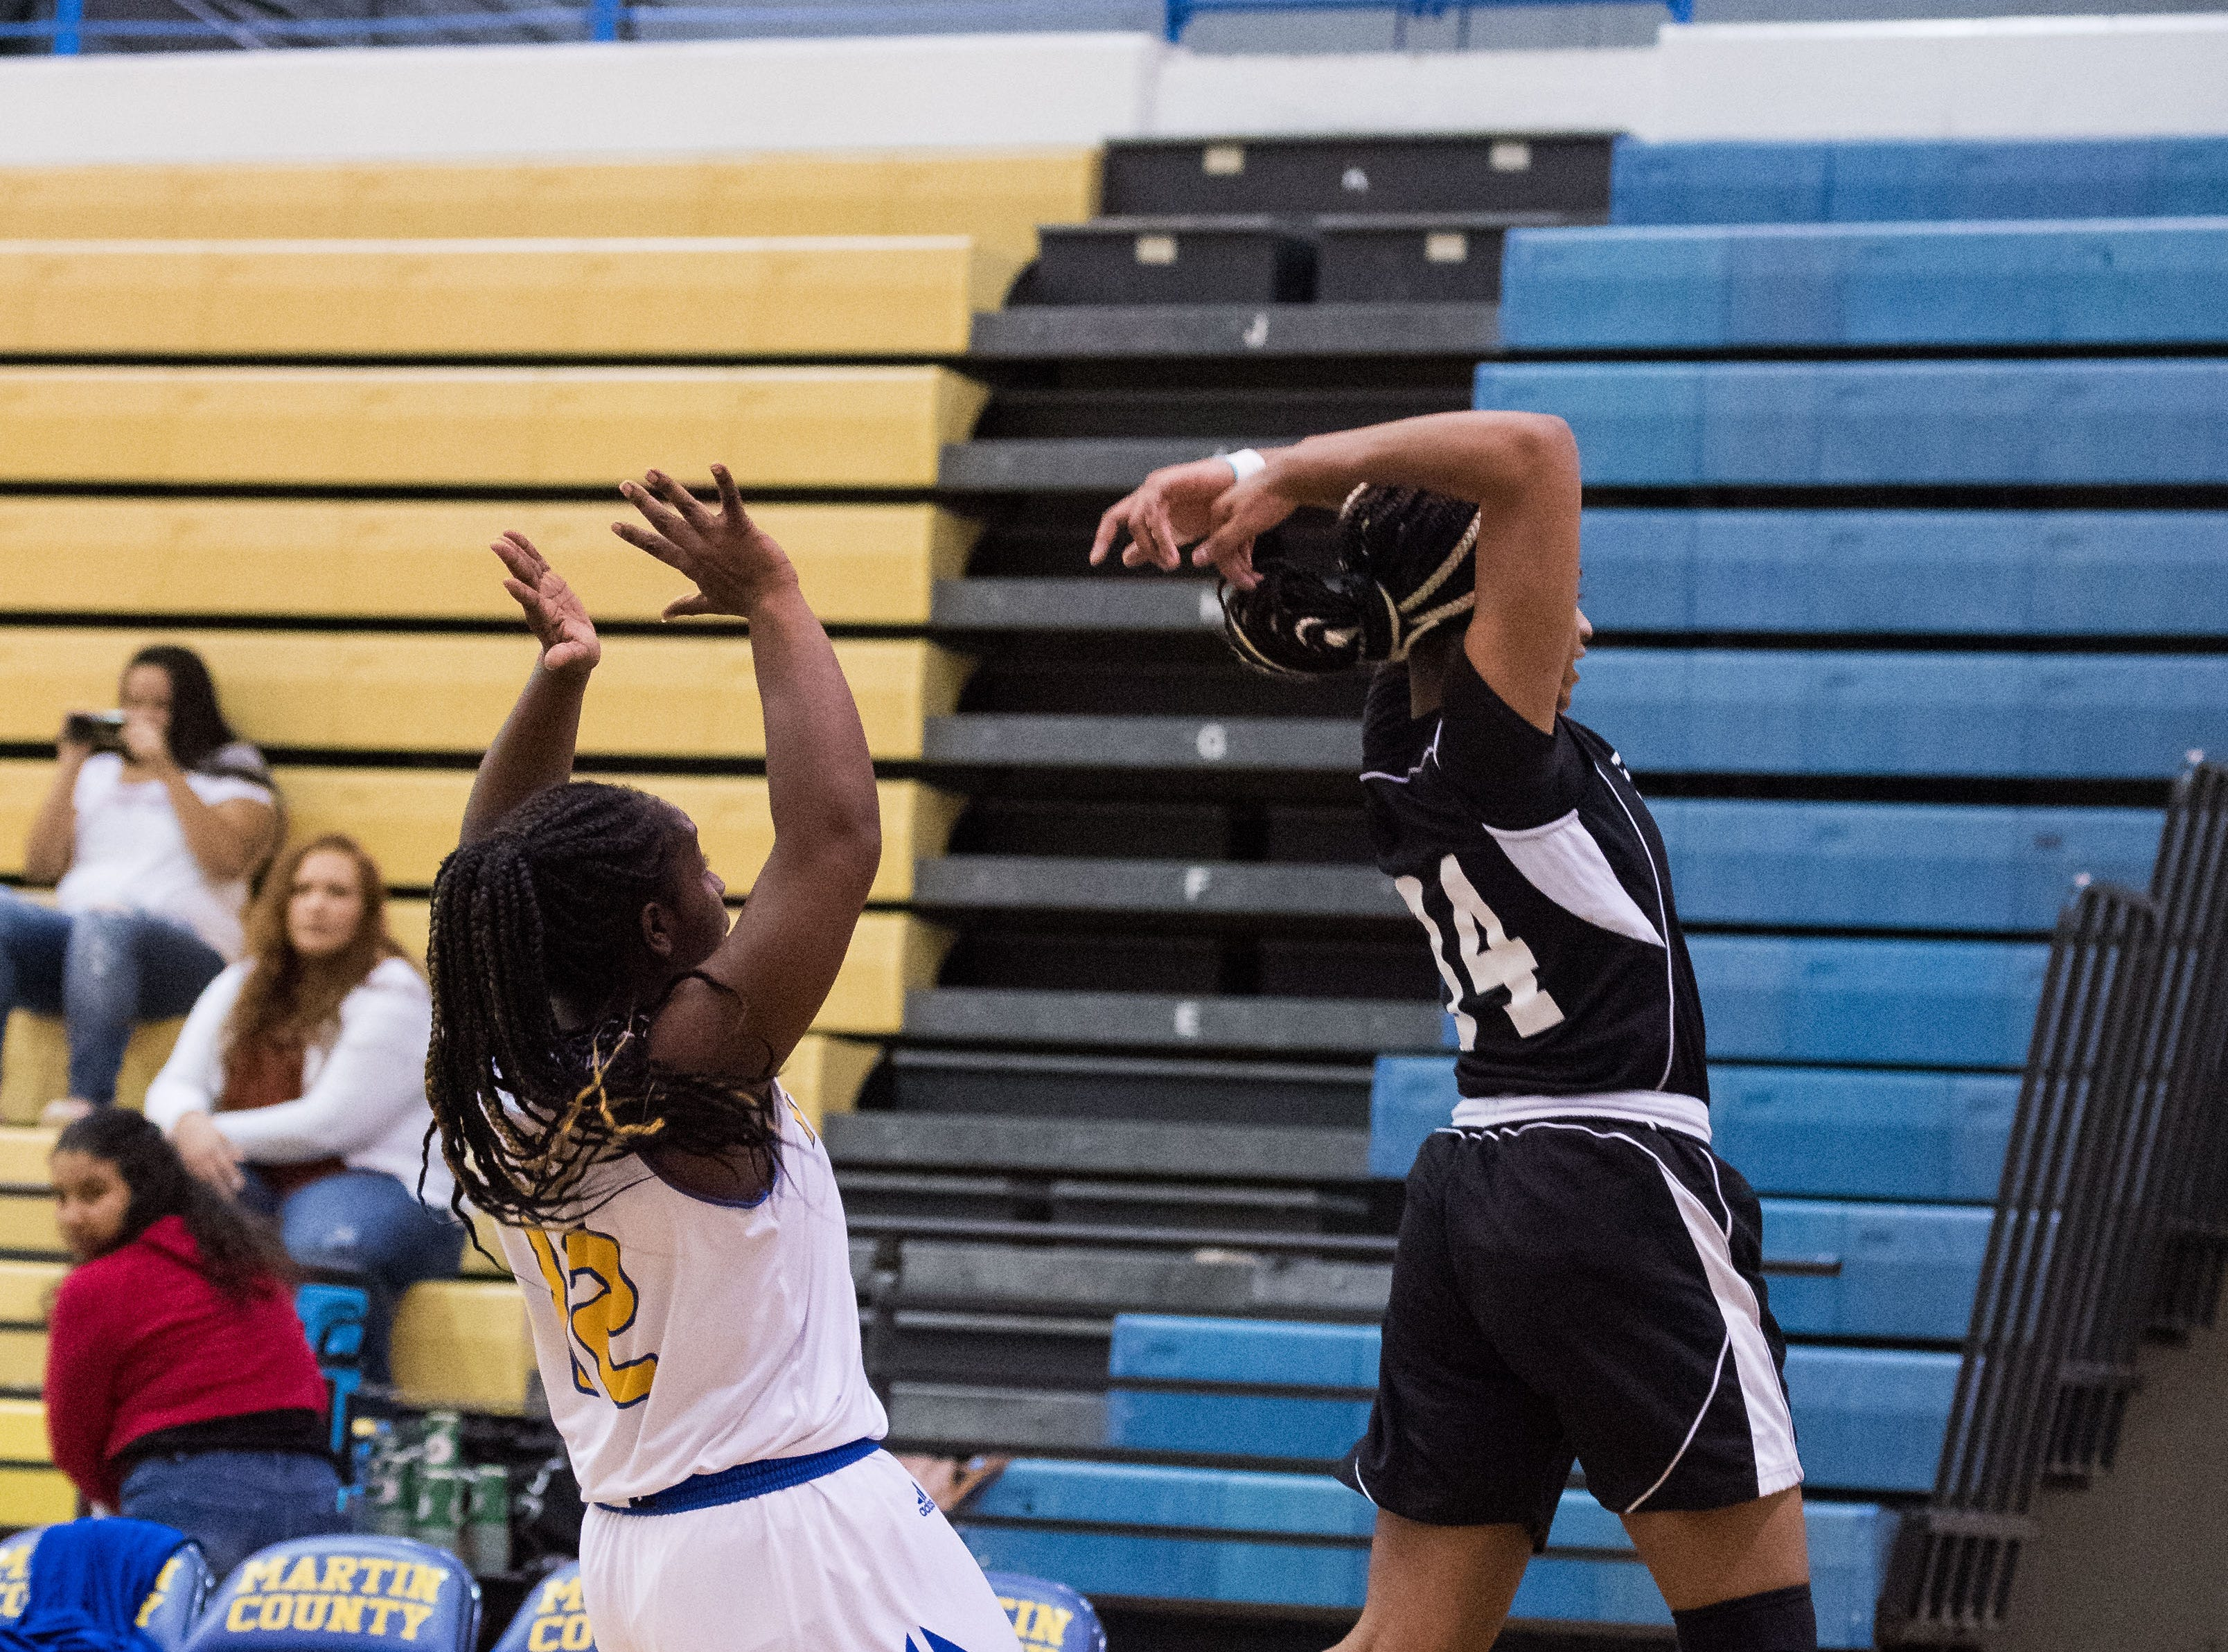 Jensen Beach plays against Martin County during the high school girls basketball game Tuesday, Jan. 22, 2019, at Martin County High School in Stuart.